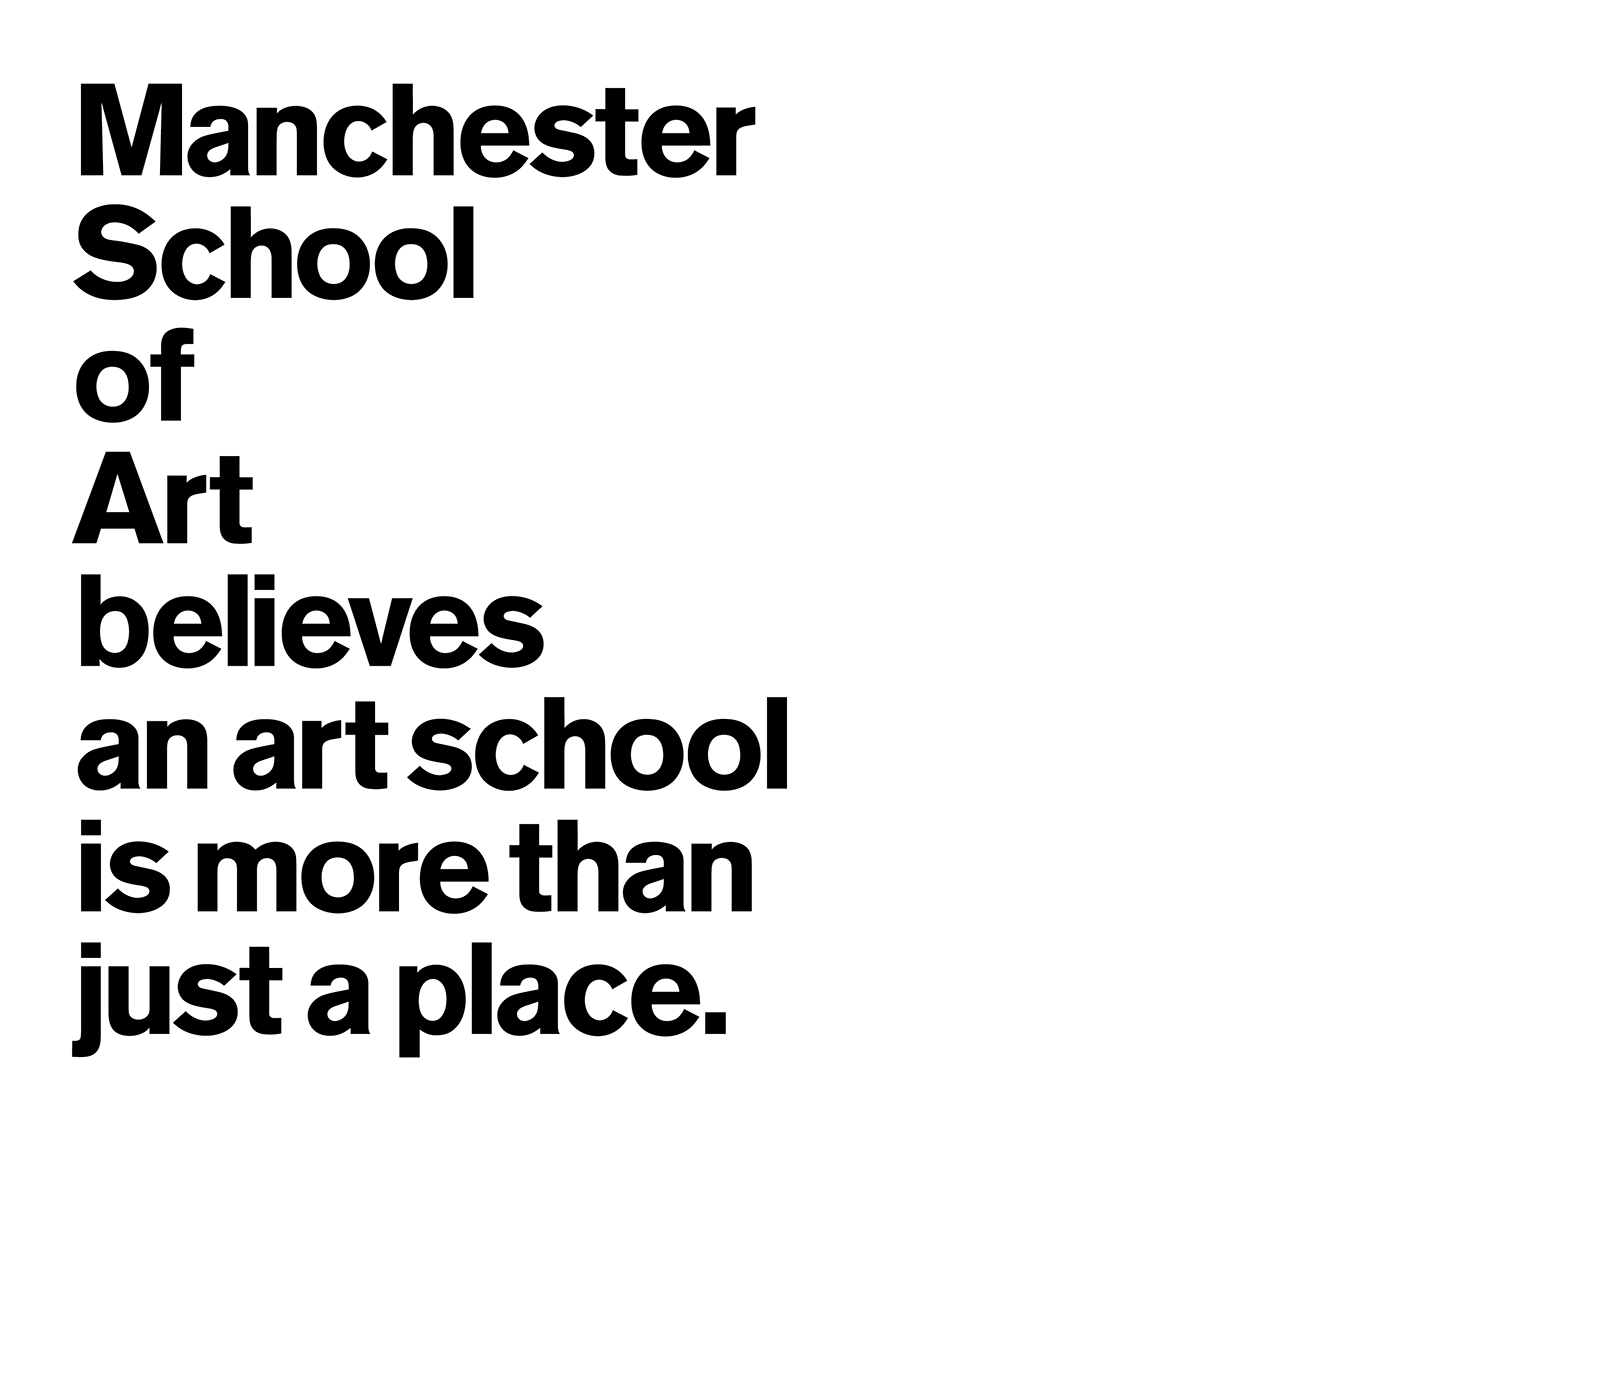 Manchester School of Art believes that an art school is more than a place.